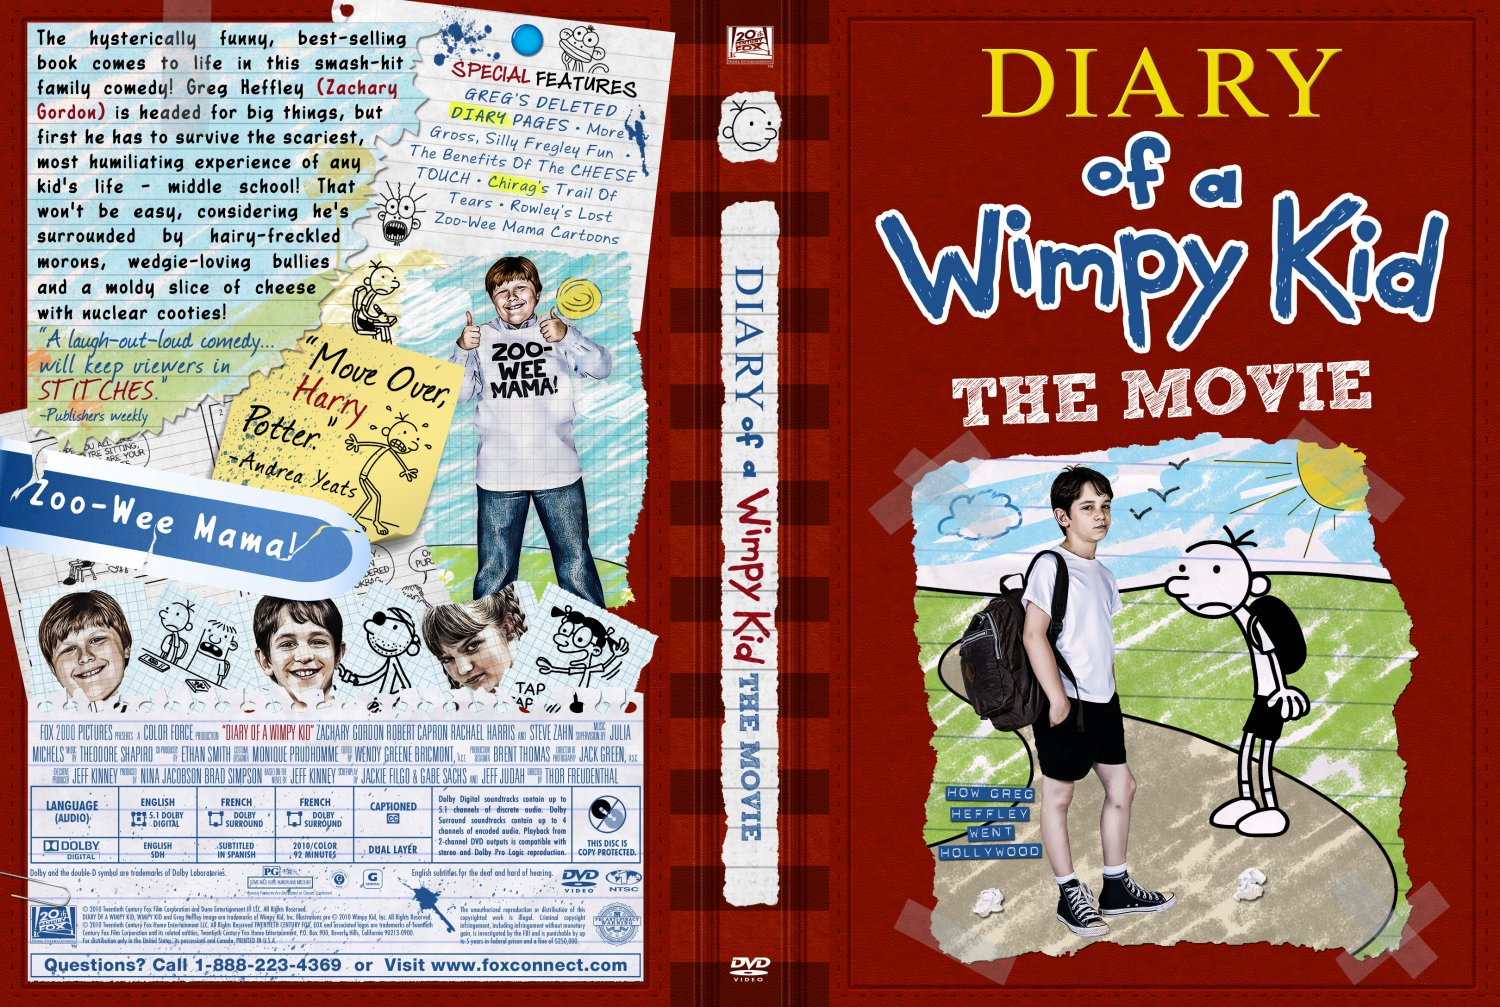 Diary of a wimpy kid movie coursework help vypaperjtsbeteria diary of a wimpy kid movie diary of a wimpy kid dog days 2012 full solutioingenieria Image collections